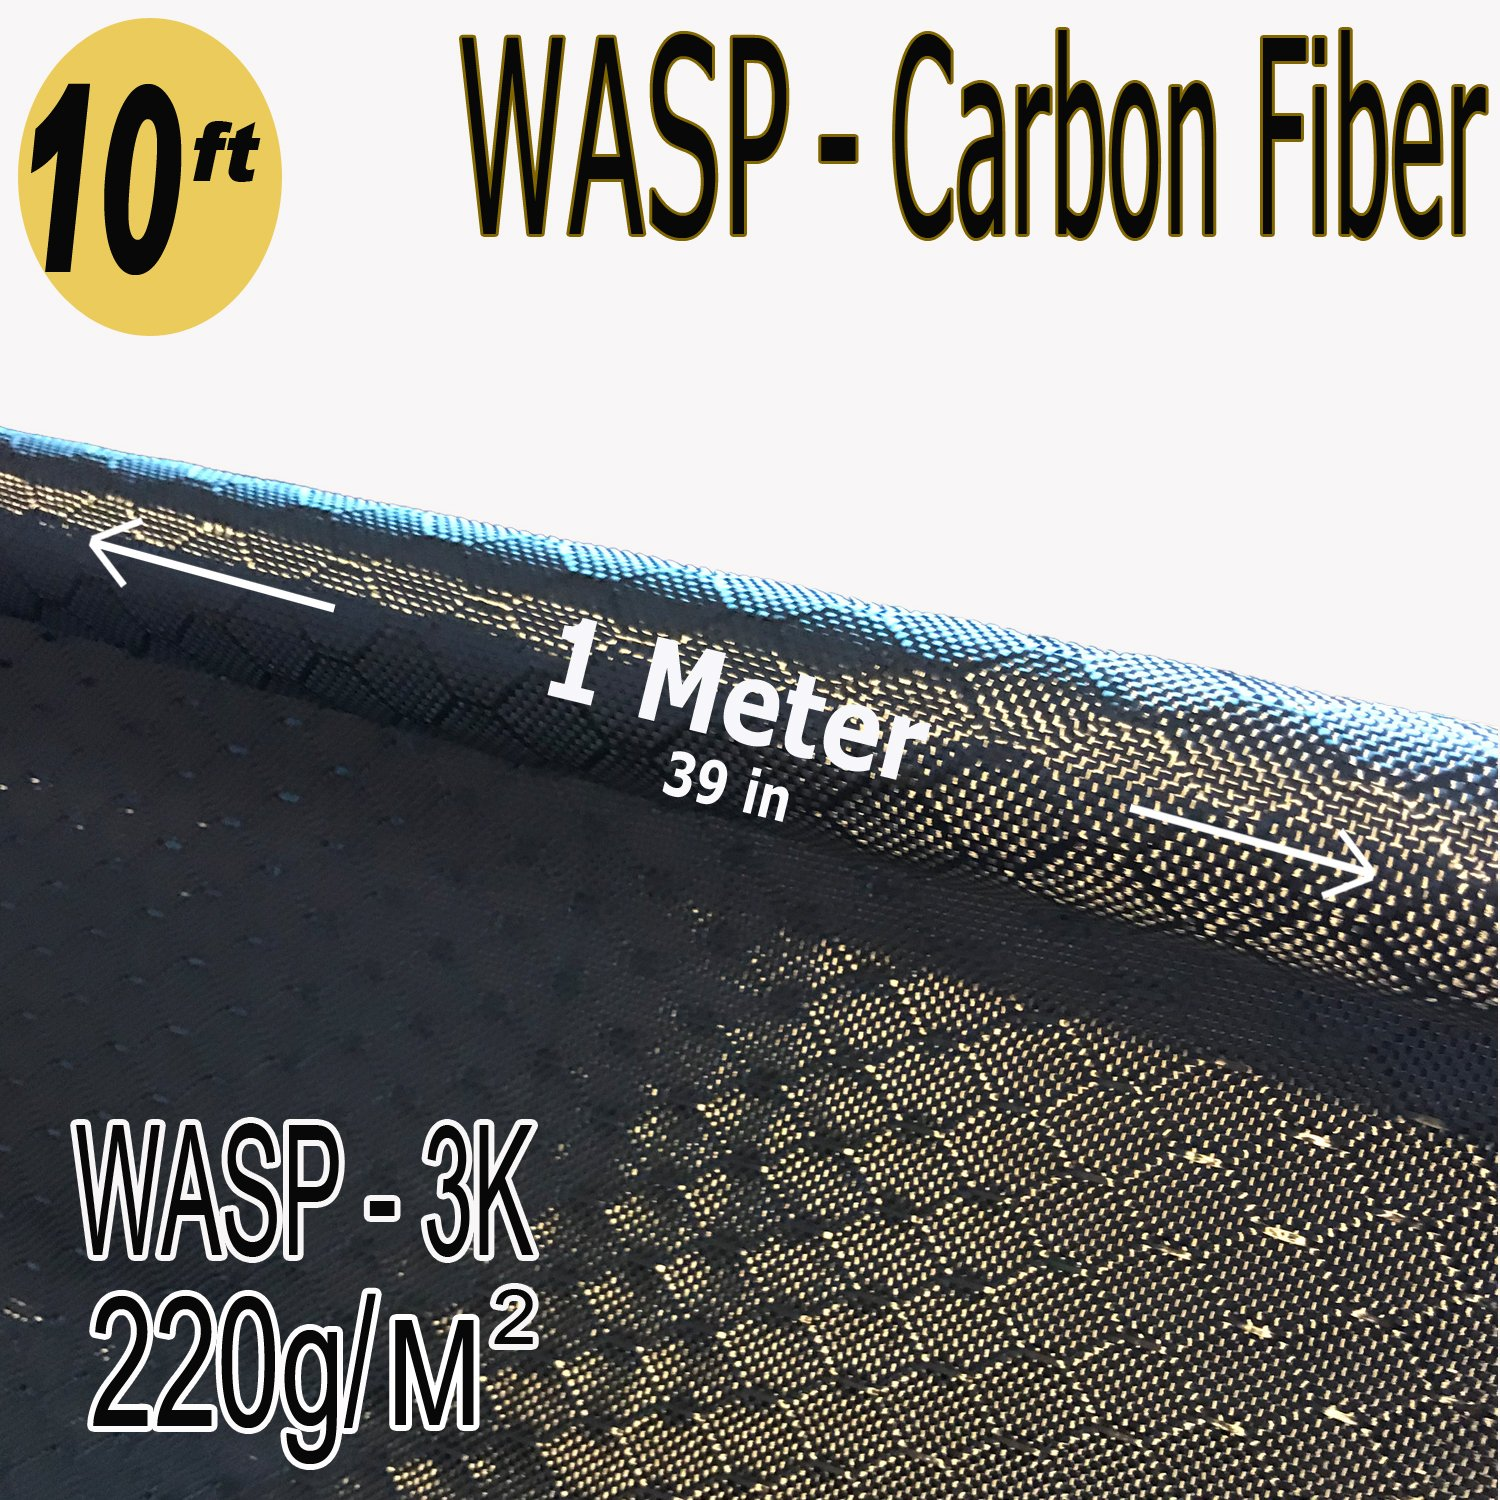 39 in x 10 FT - WASP - Carbon Fiber Fabric - Wasp Weave-3K - 220g-Black